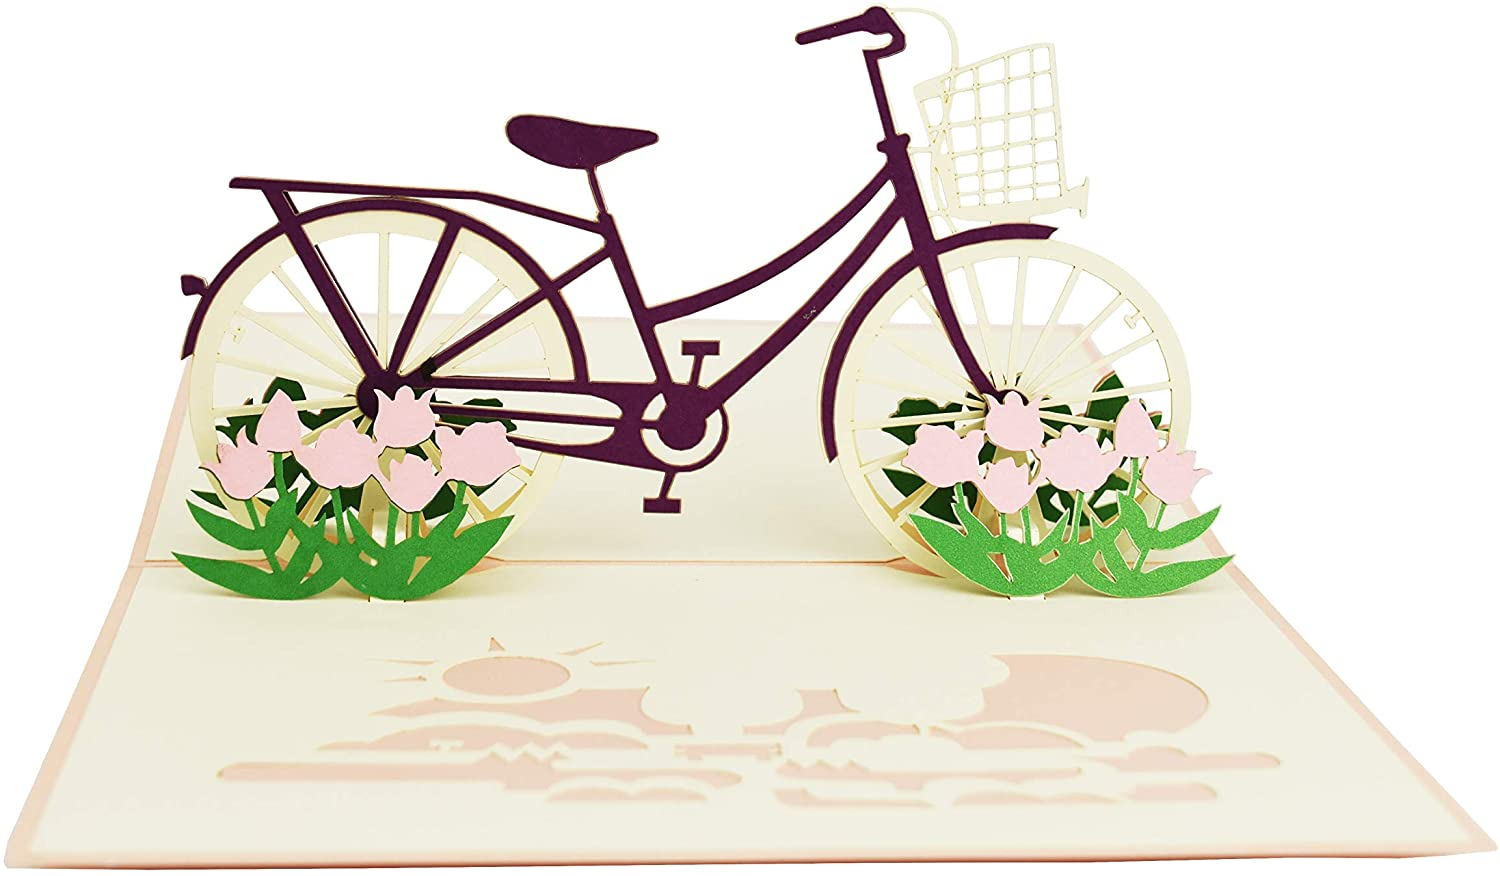 Pink Bicycle with Flowers Pop Up Greeting Card for Birthday Graduations Mothers Day Congratulations Party All Occasions by Teabug Cards